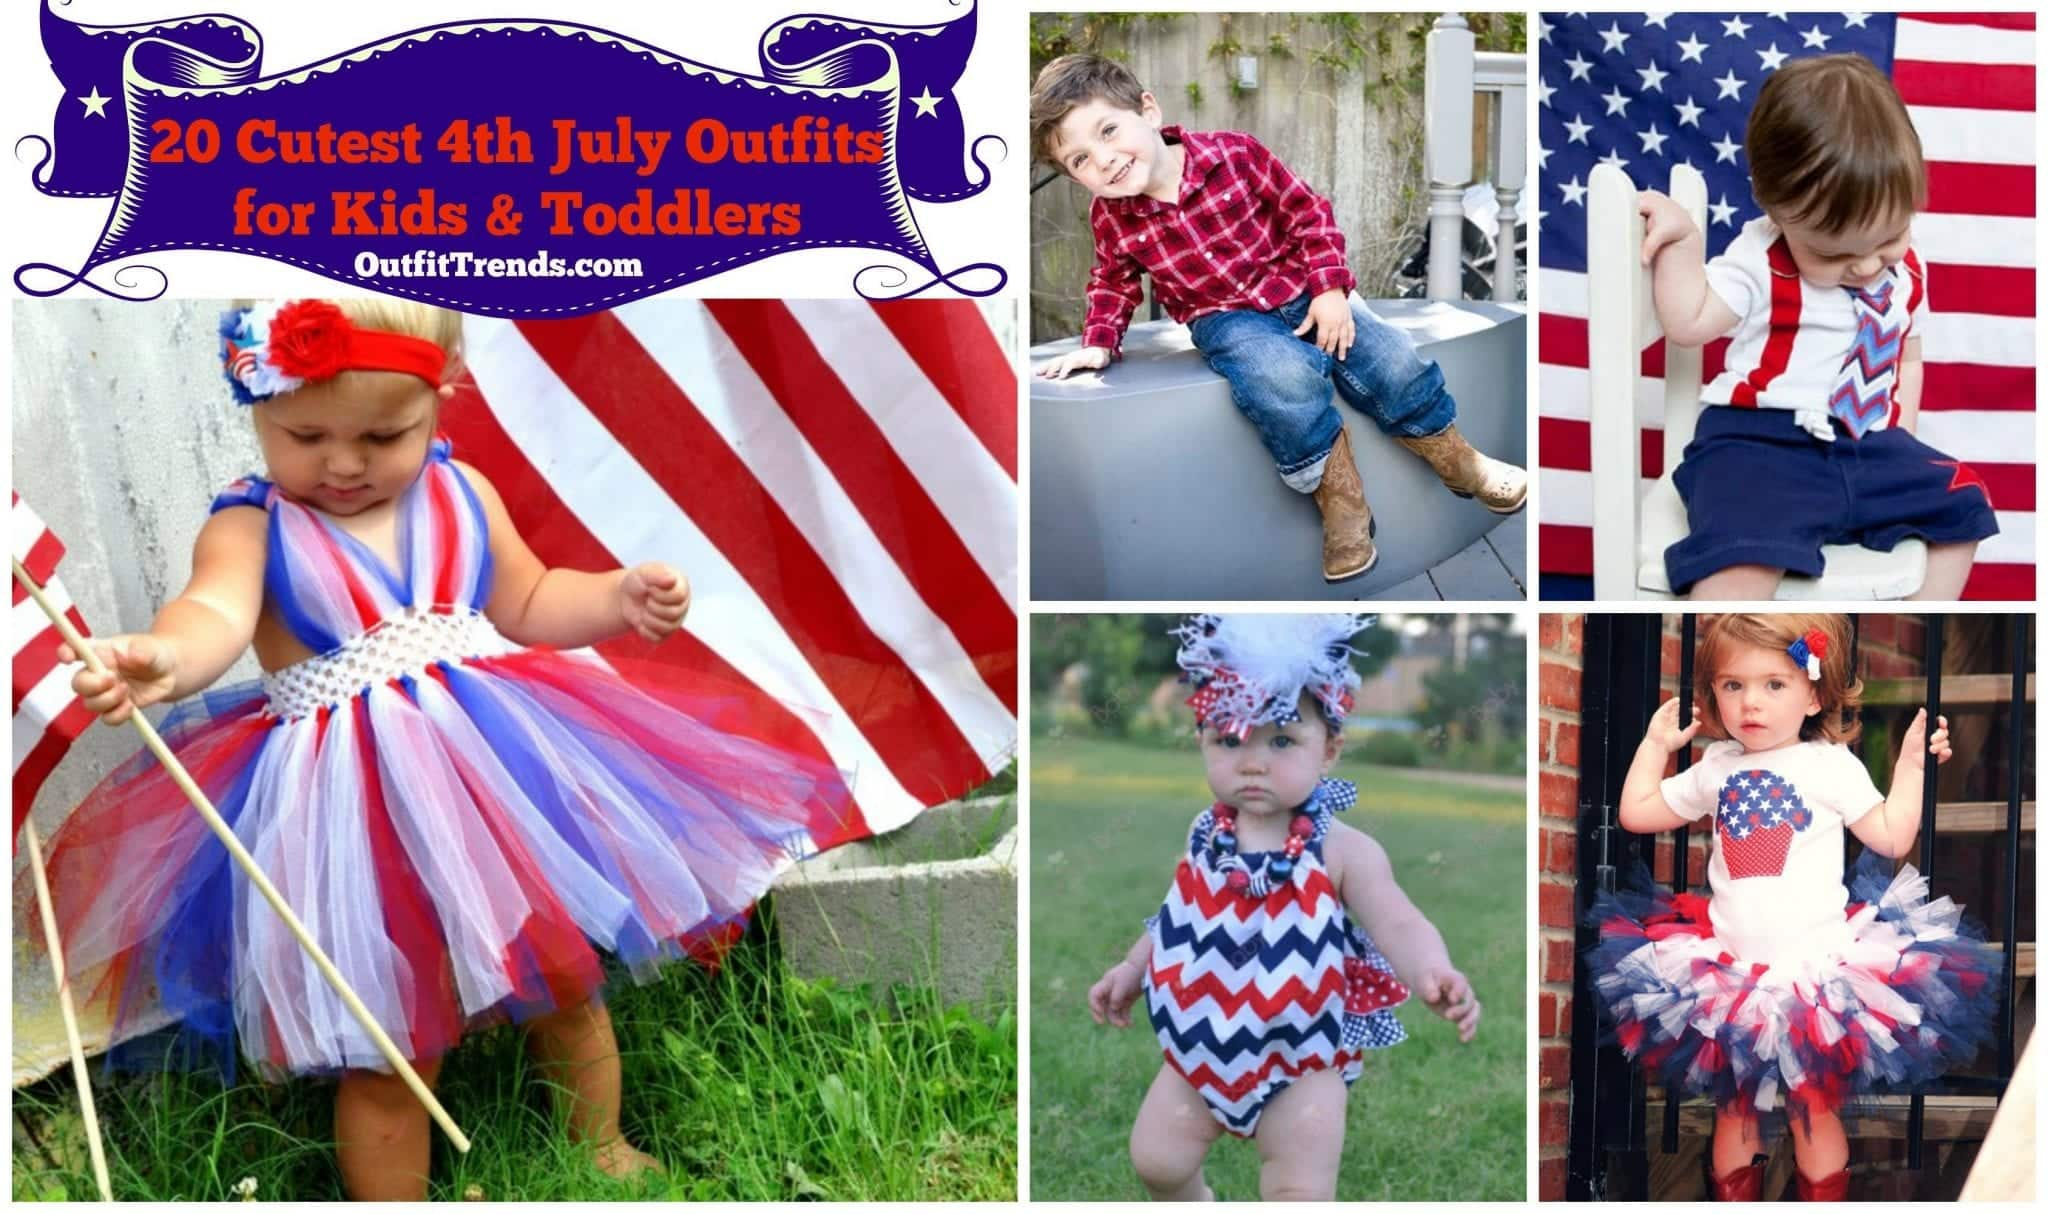 PicMonkey-Collage-10 4th of July Outfits for Kids-20 Cute Ways to Dress Up Kids on 4th July